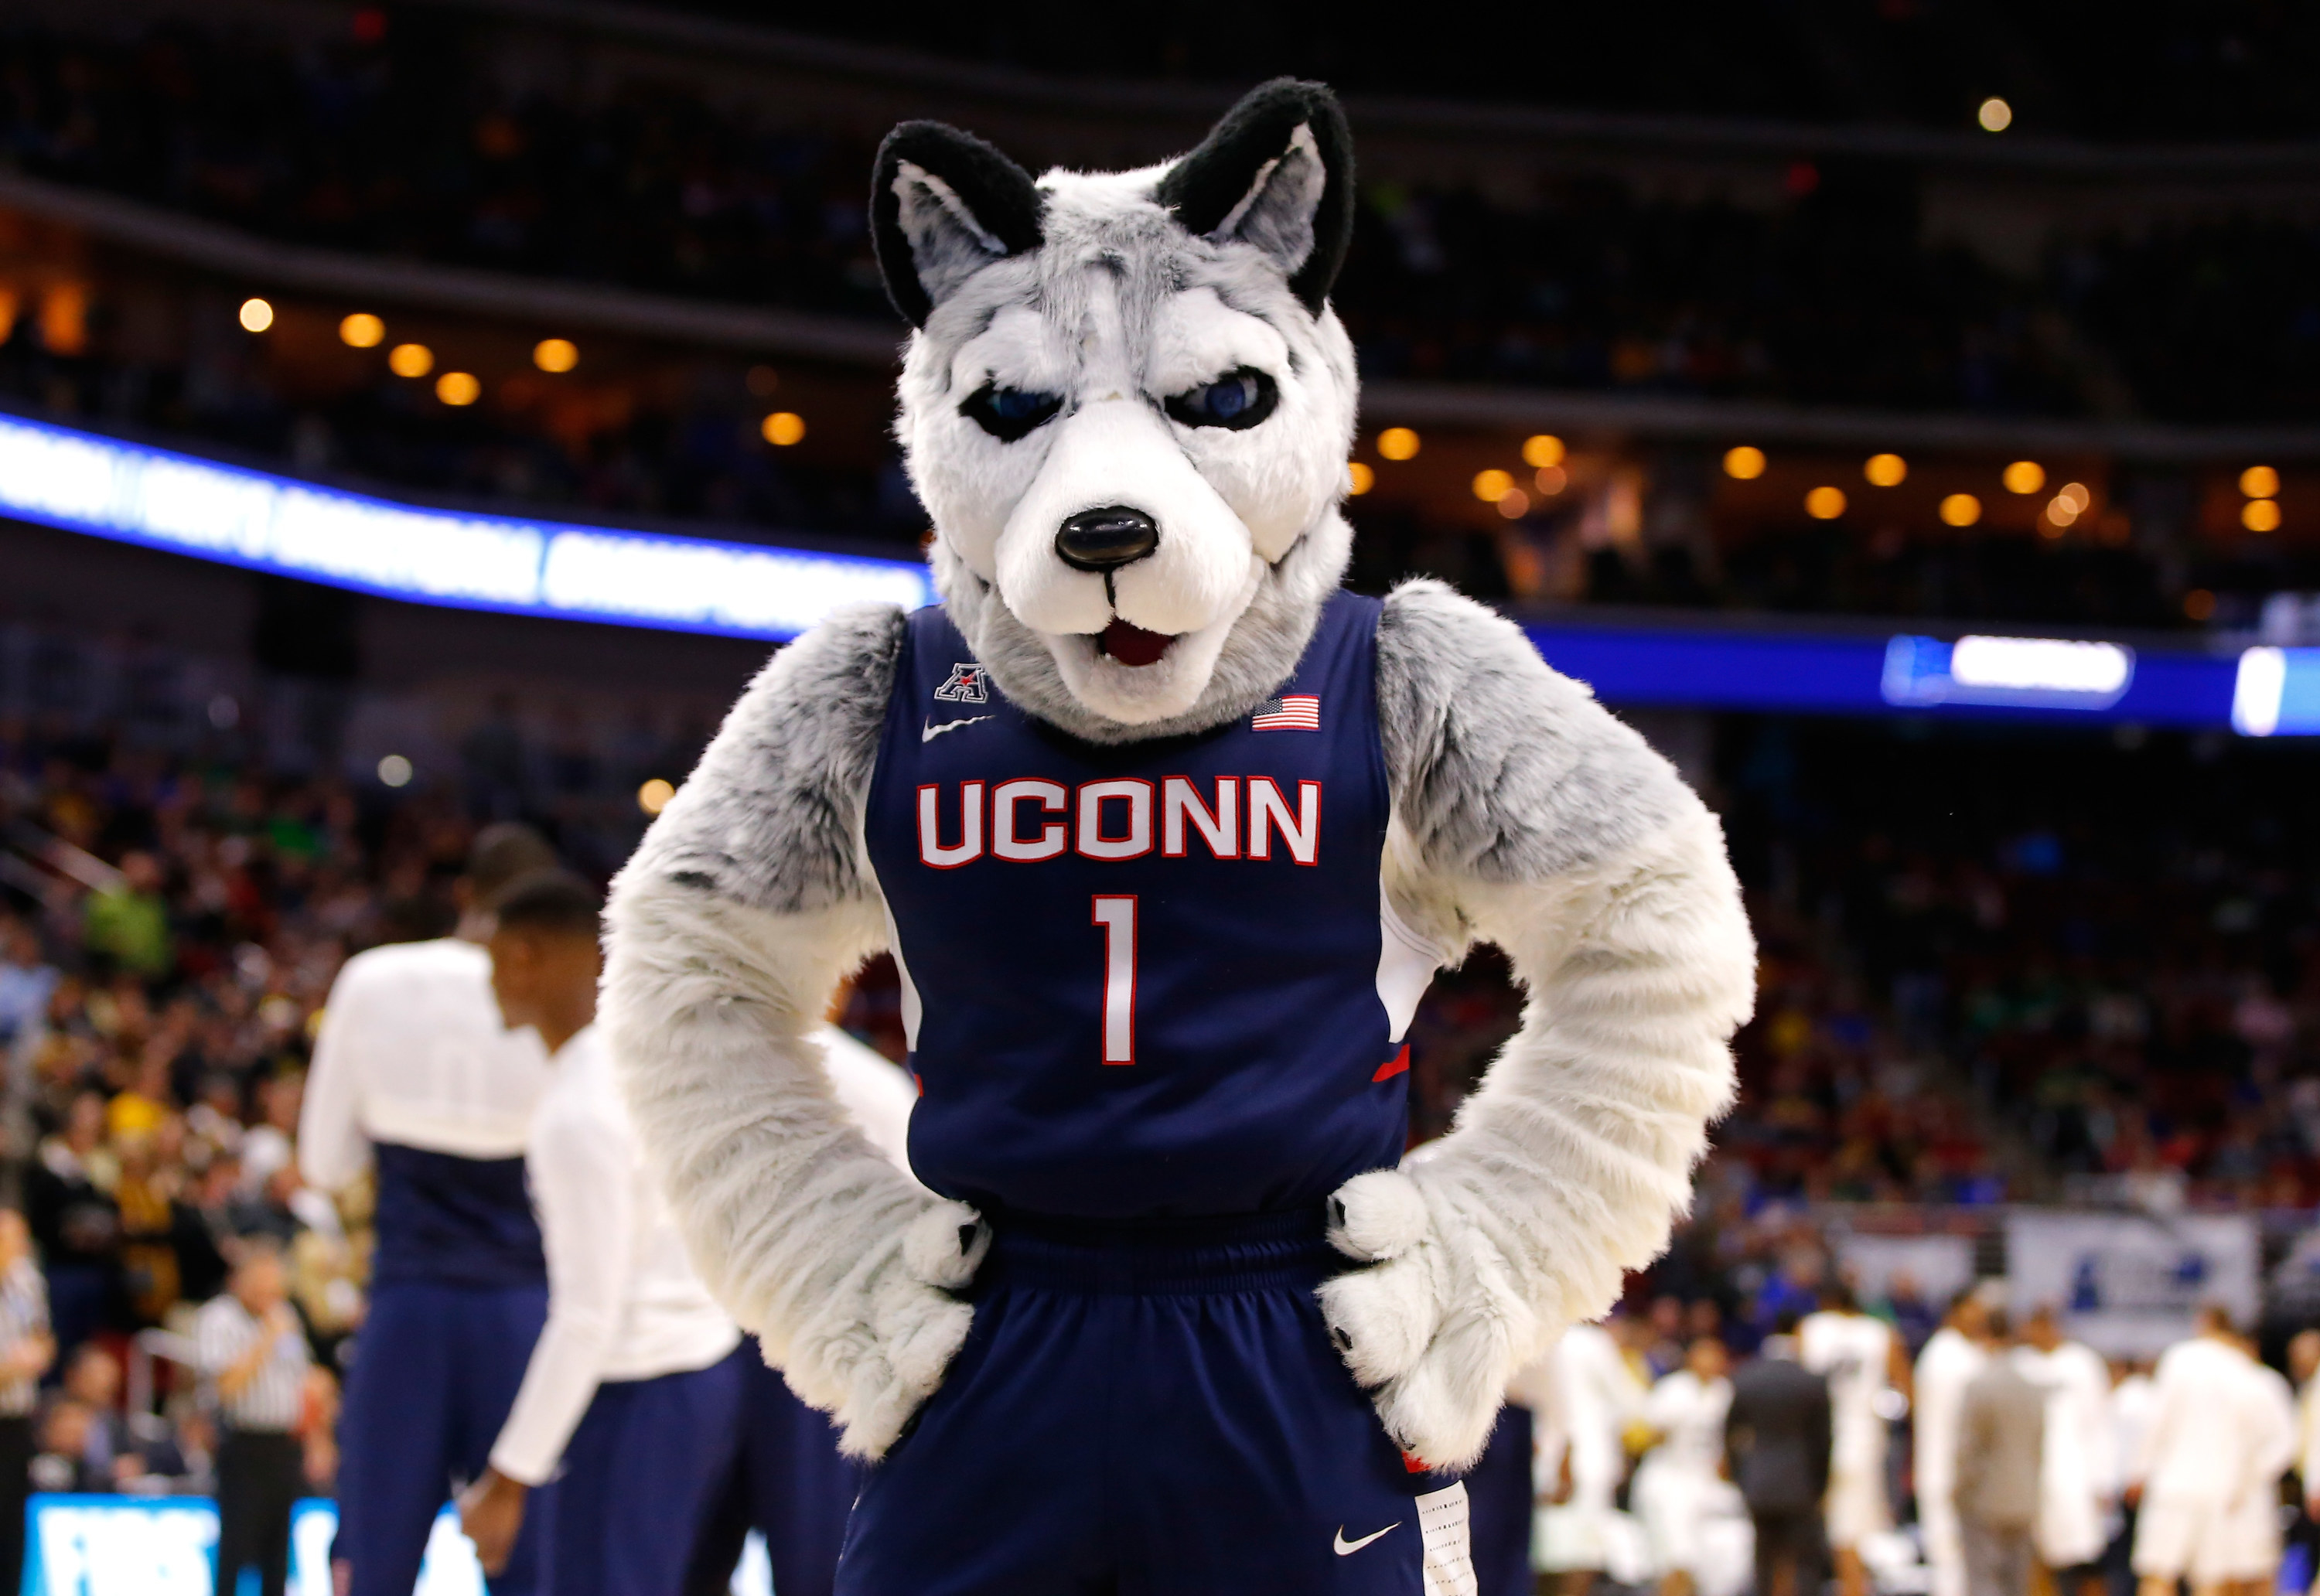 UConn's gray husky mascot with his paws on his hips.